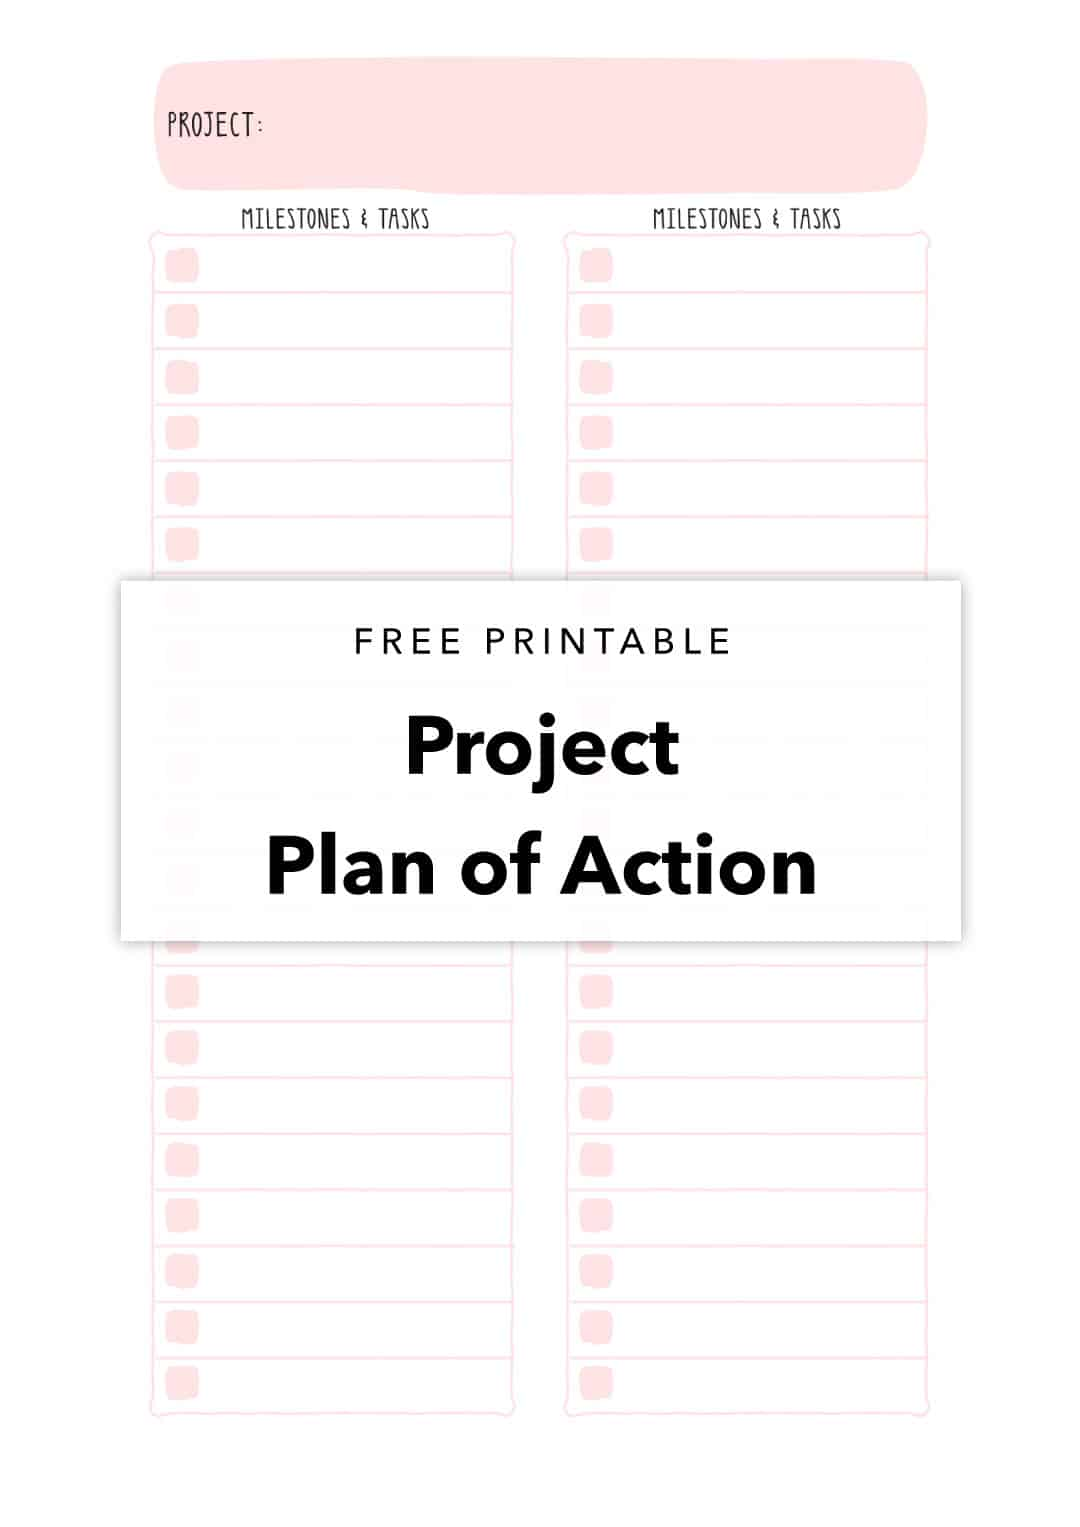 Free Printable Project Plan of Action